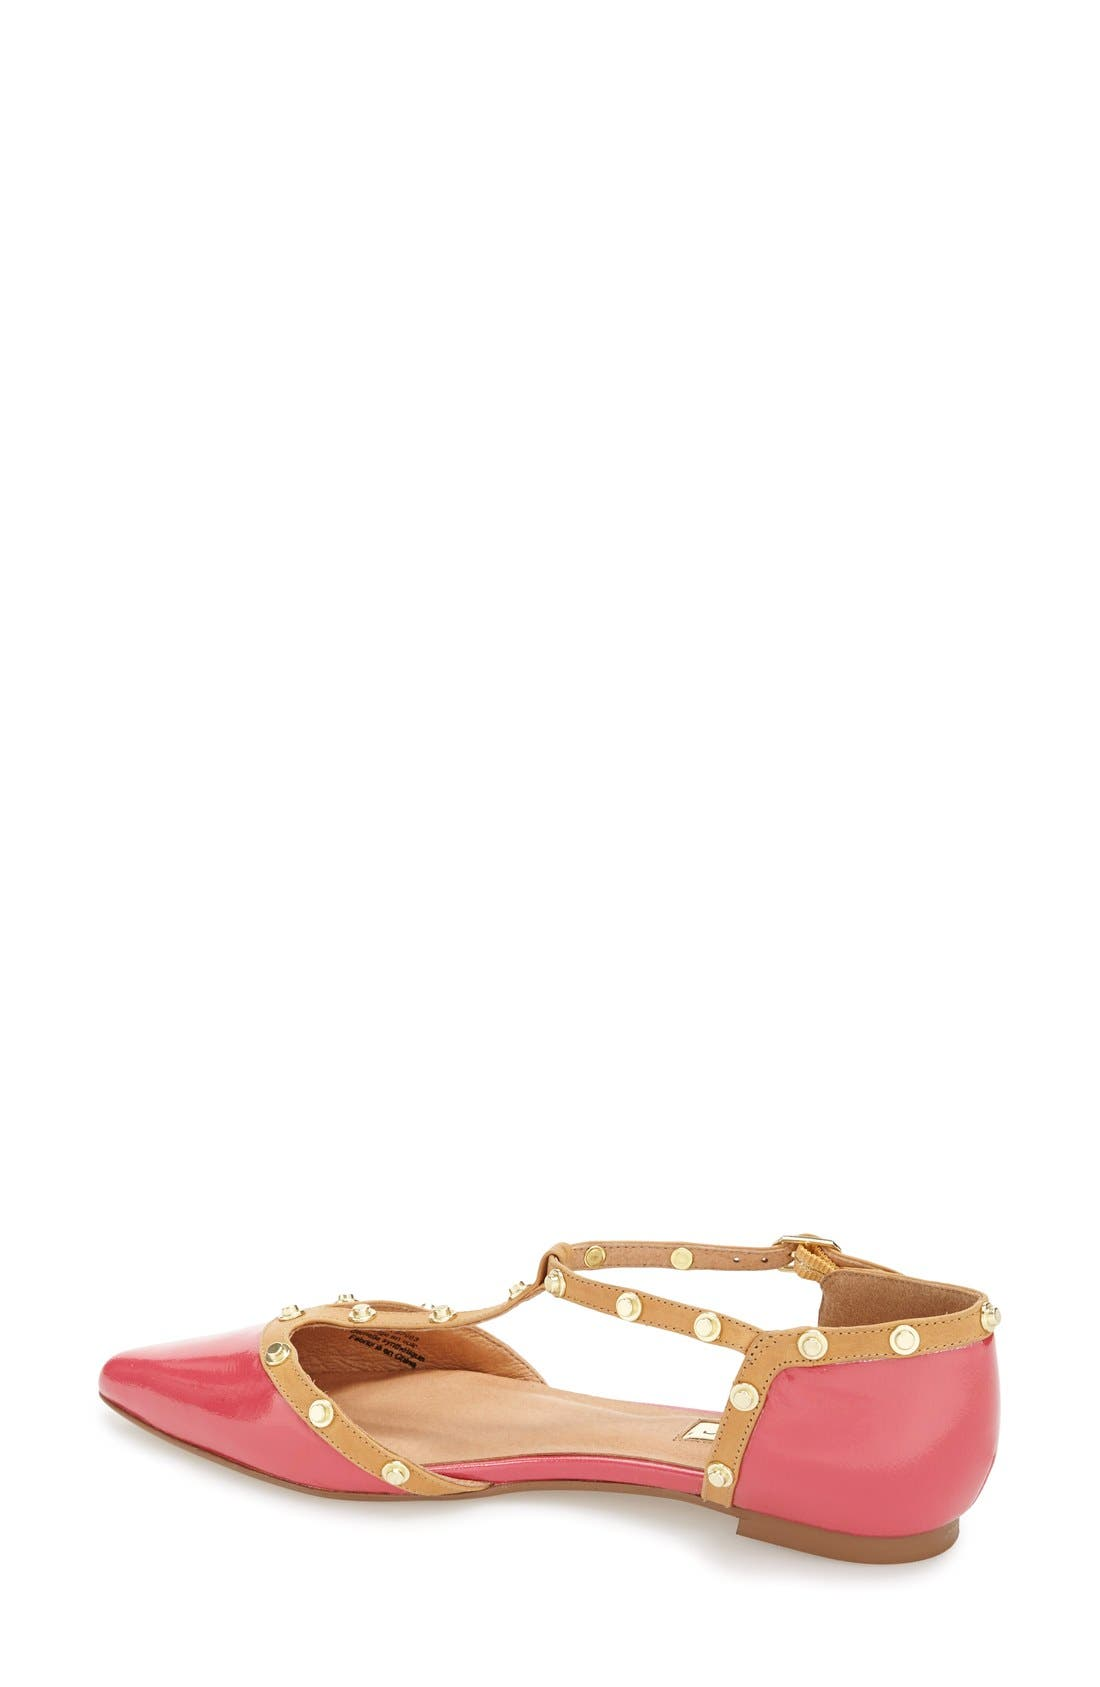 ,                             'Olson' Pointy Toe Studded T-Strap Flat,                             Alternate thumbnail 70, color,                             650